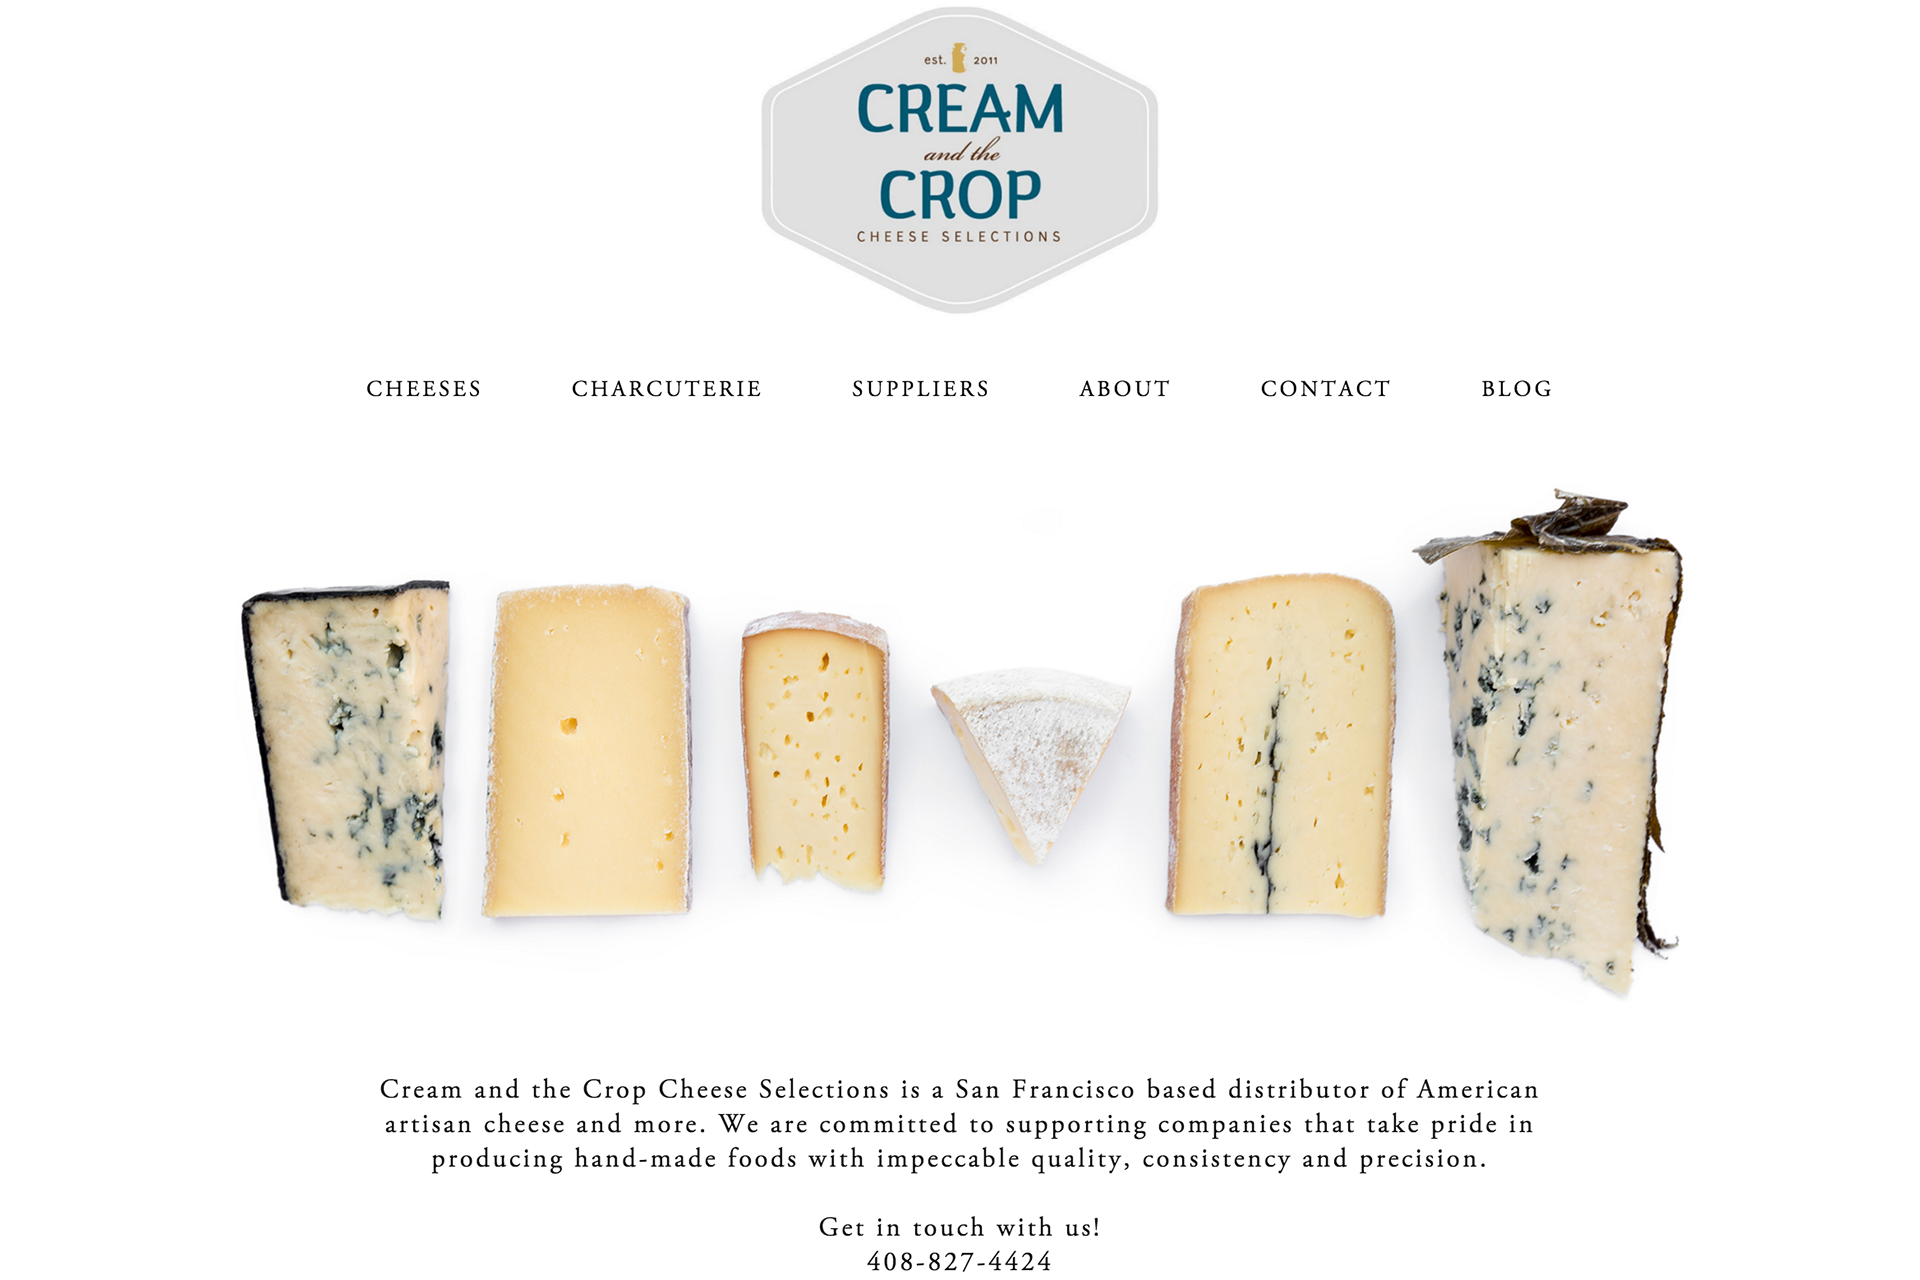 cream_and_the_crop_cheese_selections